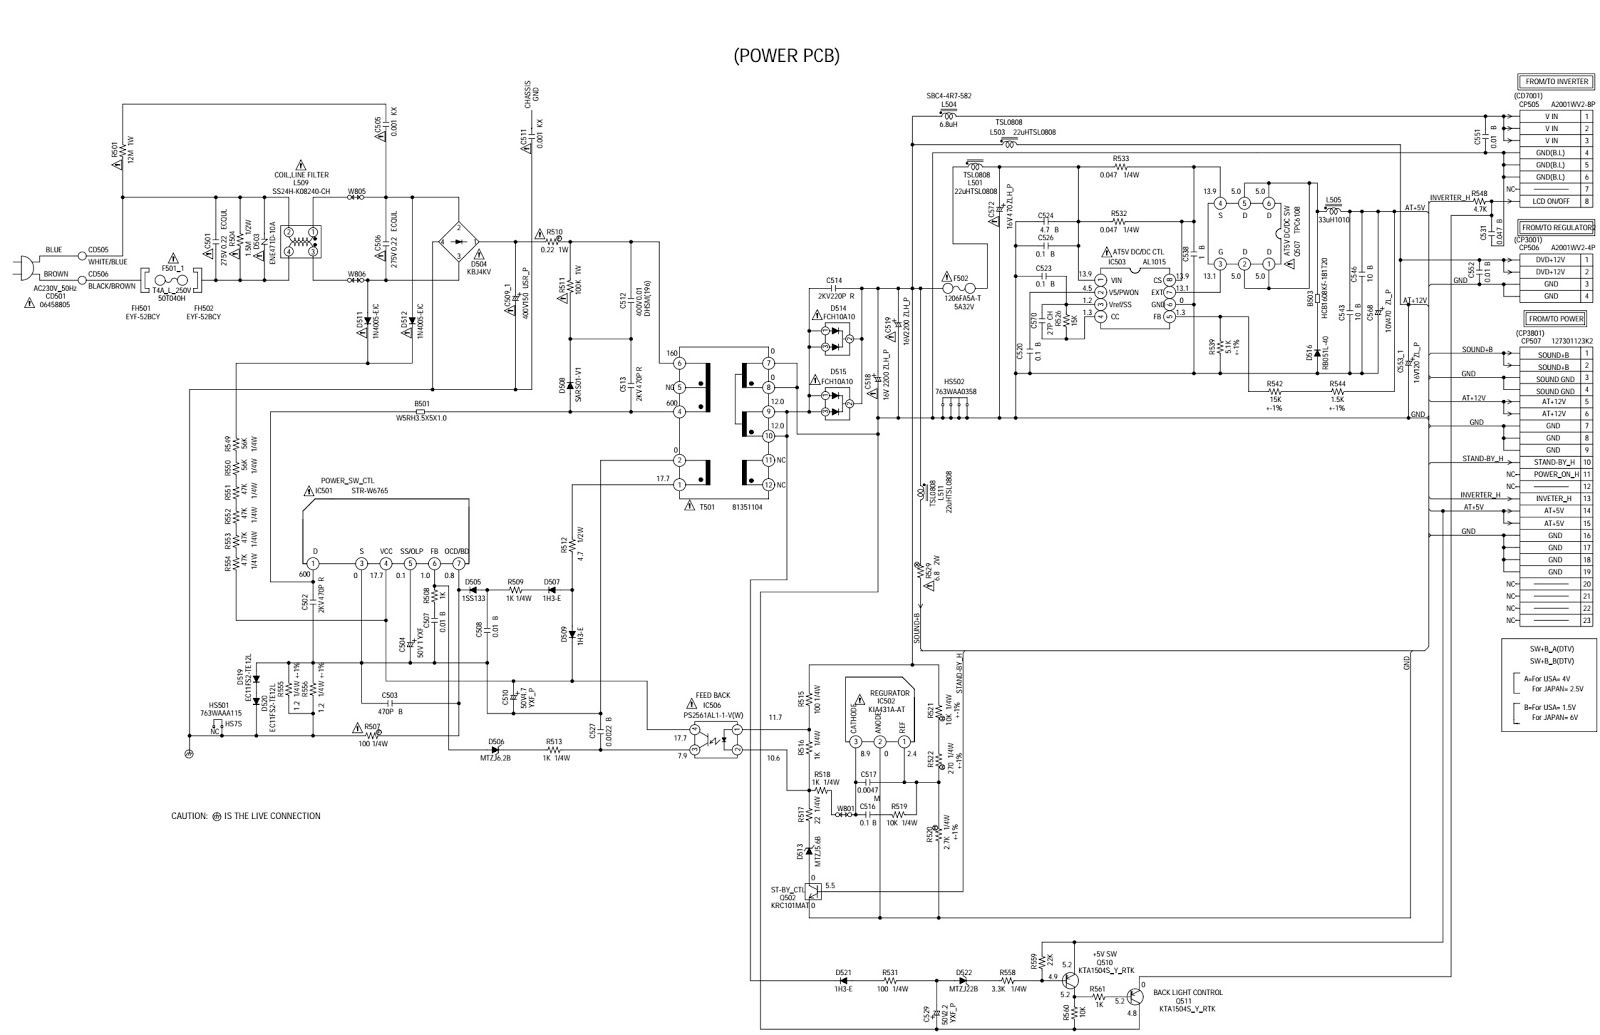 Electro Help 04 17 Smps Buck Converter Using 34063 Ic Electronic Circuit Diagrams Some Discs Are Specified As Not Suitable For Children Such Can Be Limited To Playback With The Unit 1 Press C Or D Select Parental